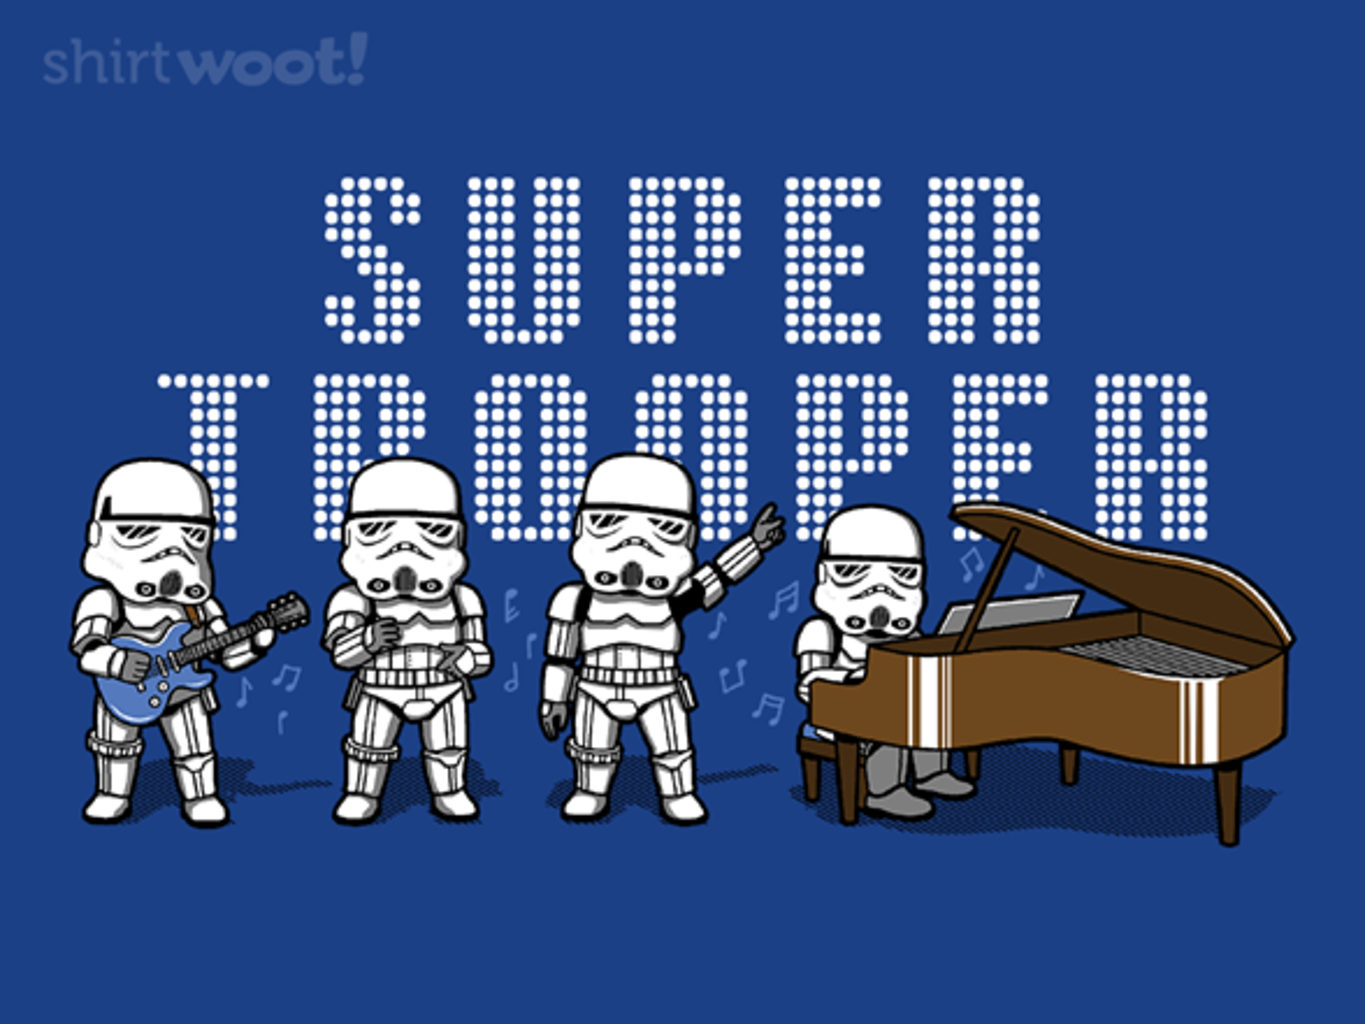 Woot!: Supertrooper